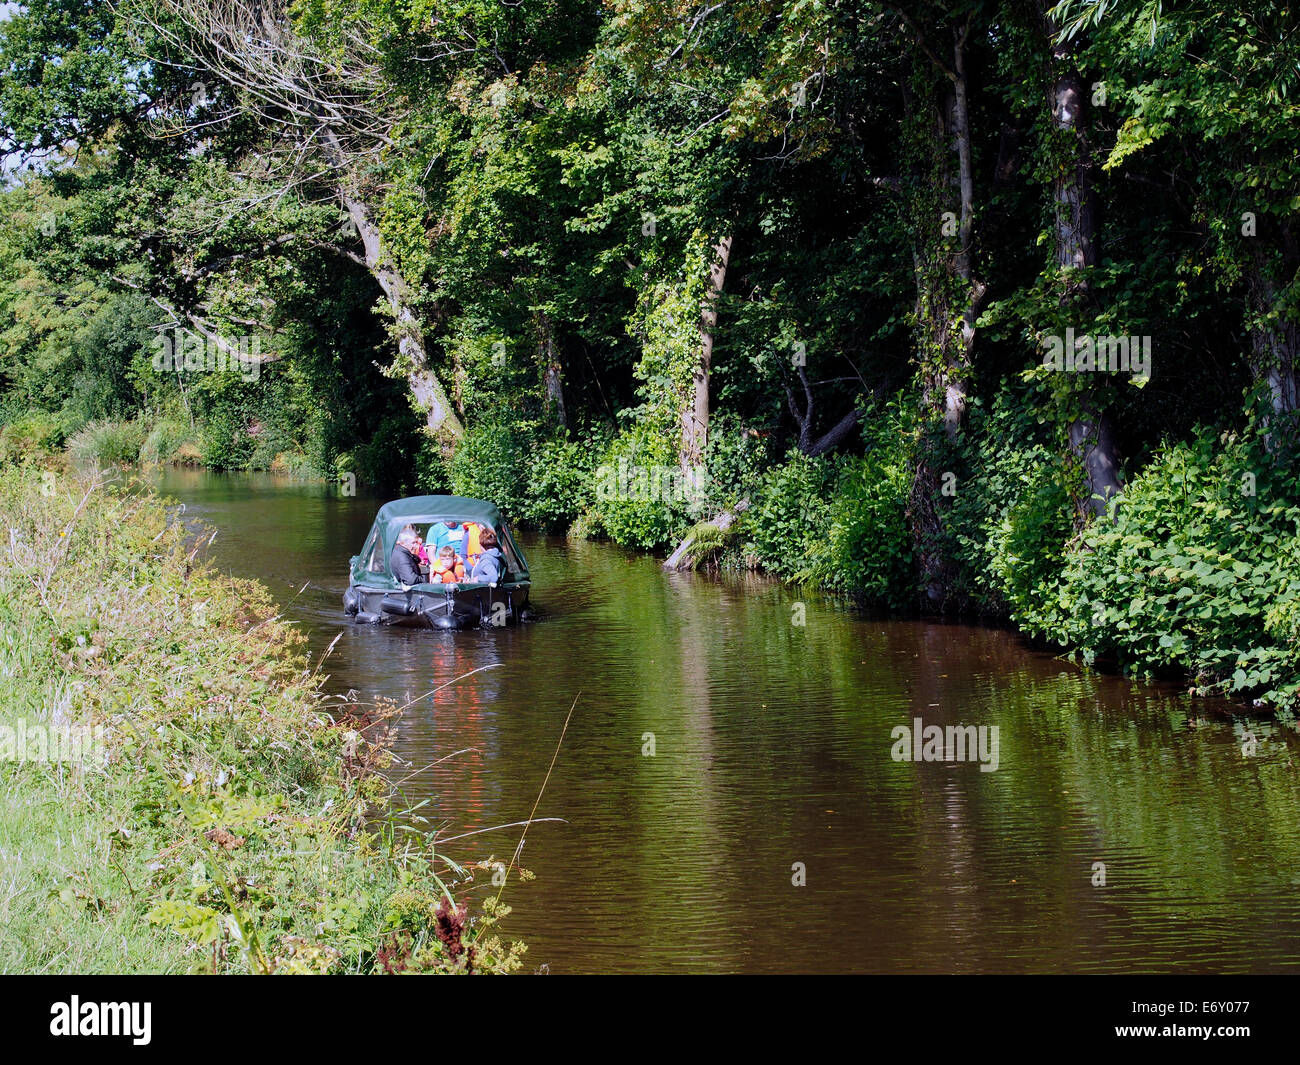 The Monmouthshire & Brecon Canal (Mon & Brec) on the edge of Brecon with a small day boat approaching. - Stock Image